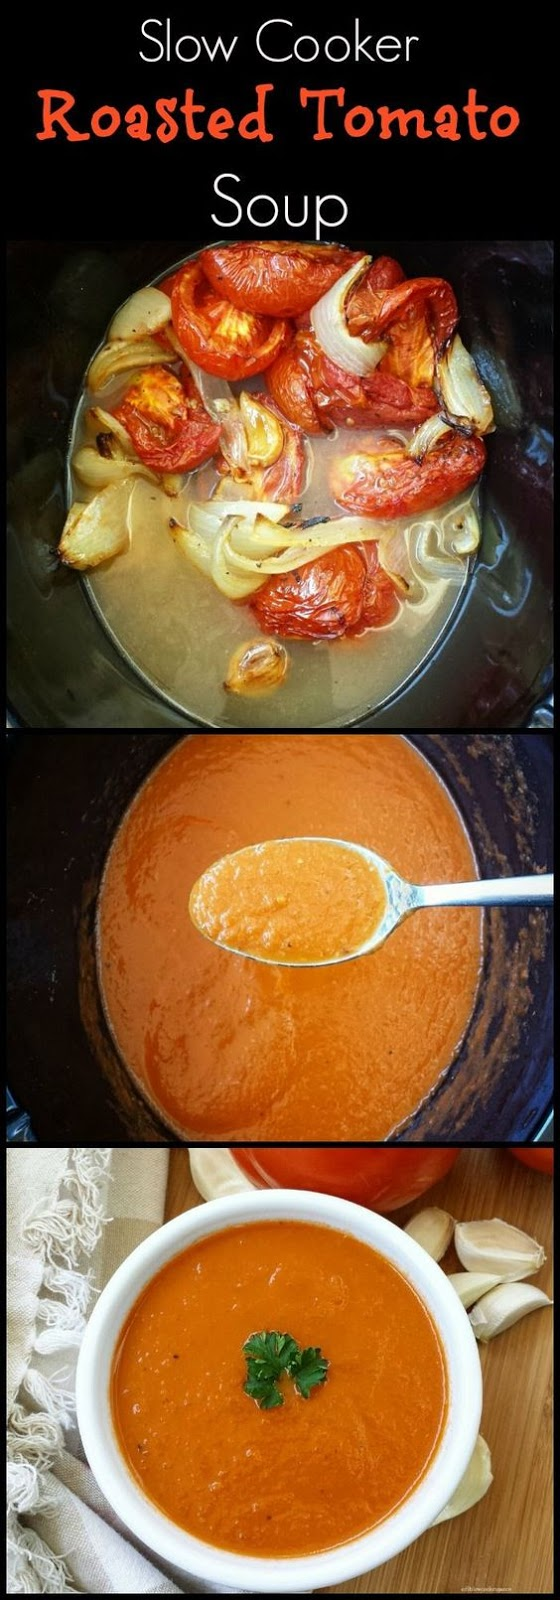 SLOW COOKER/INSTANT POT ROASTED TOMATO SOUP (PALEO/WHOLE30)